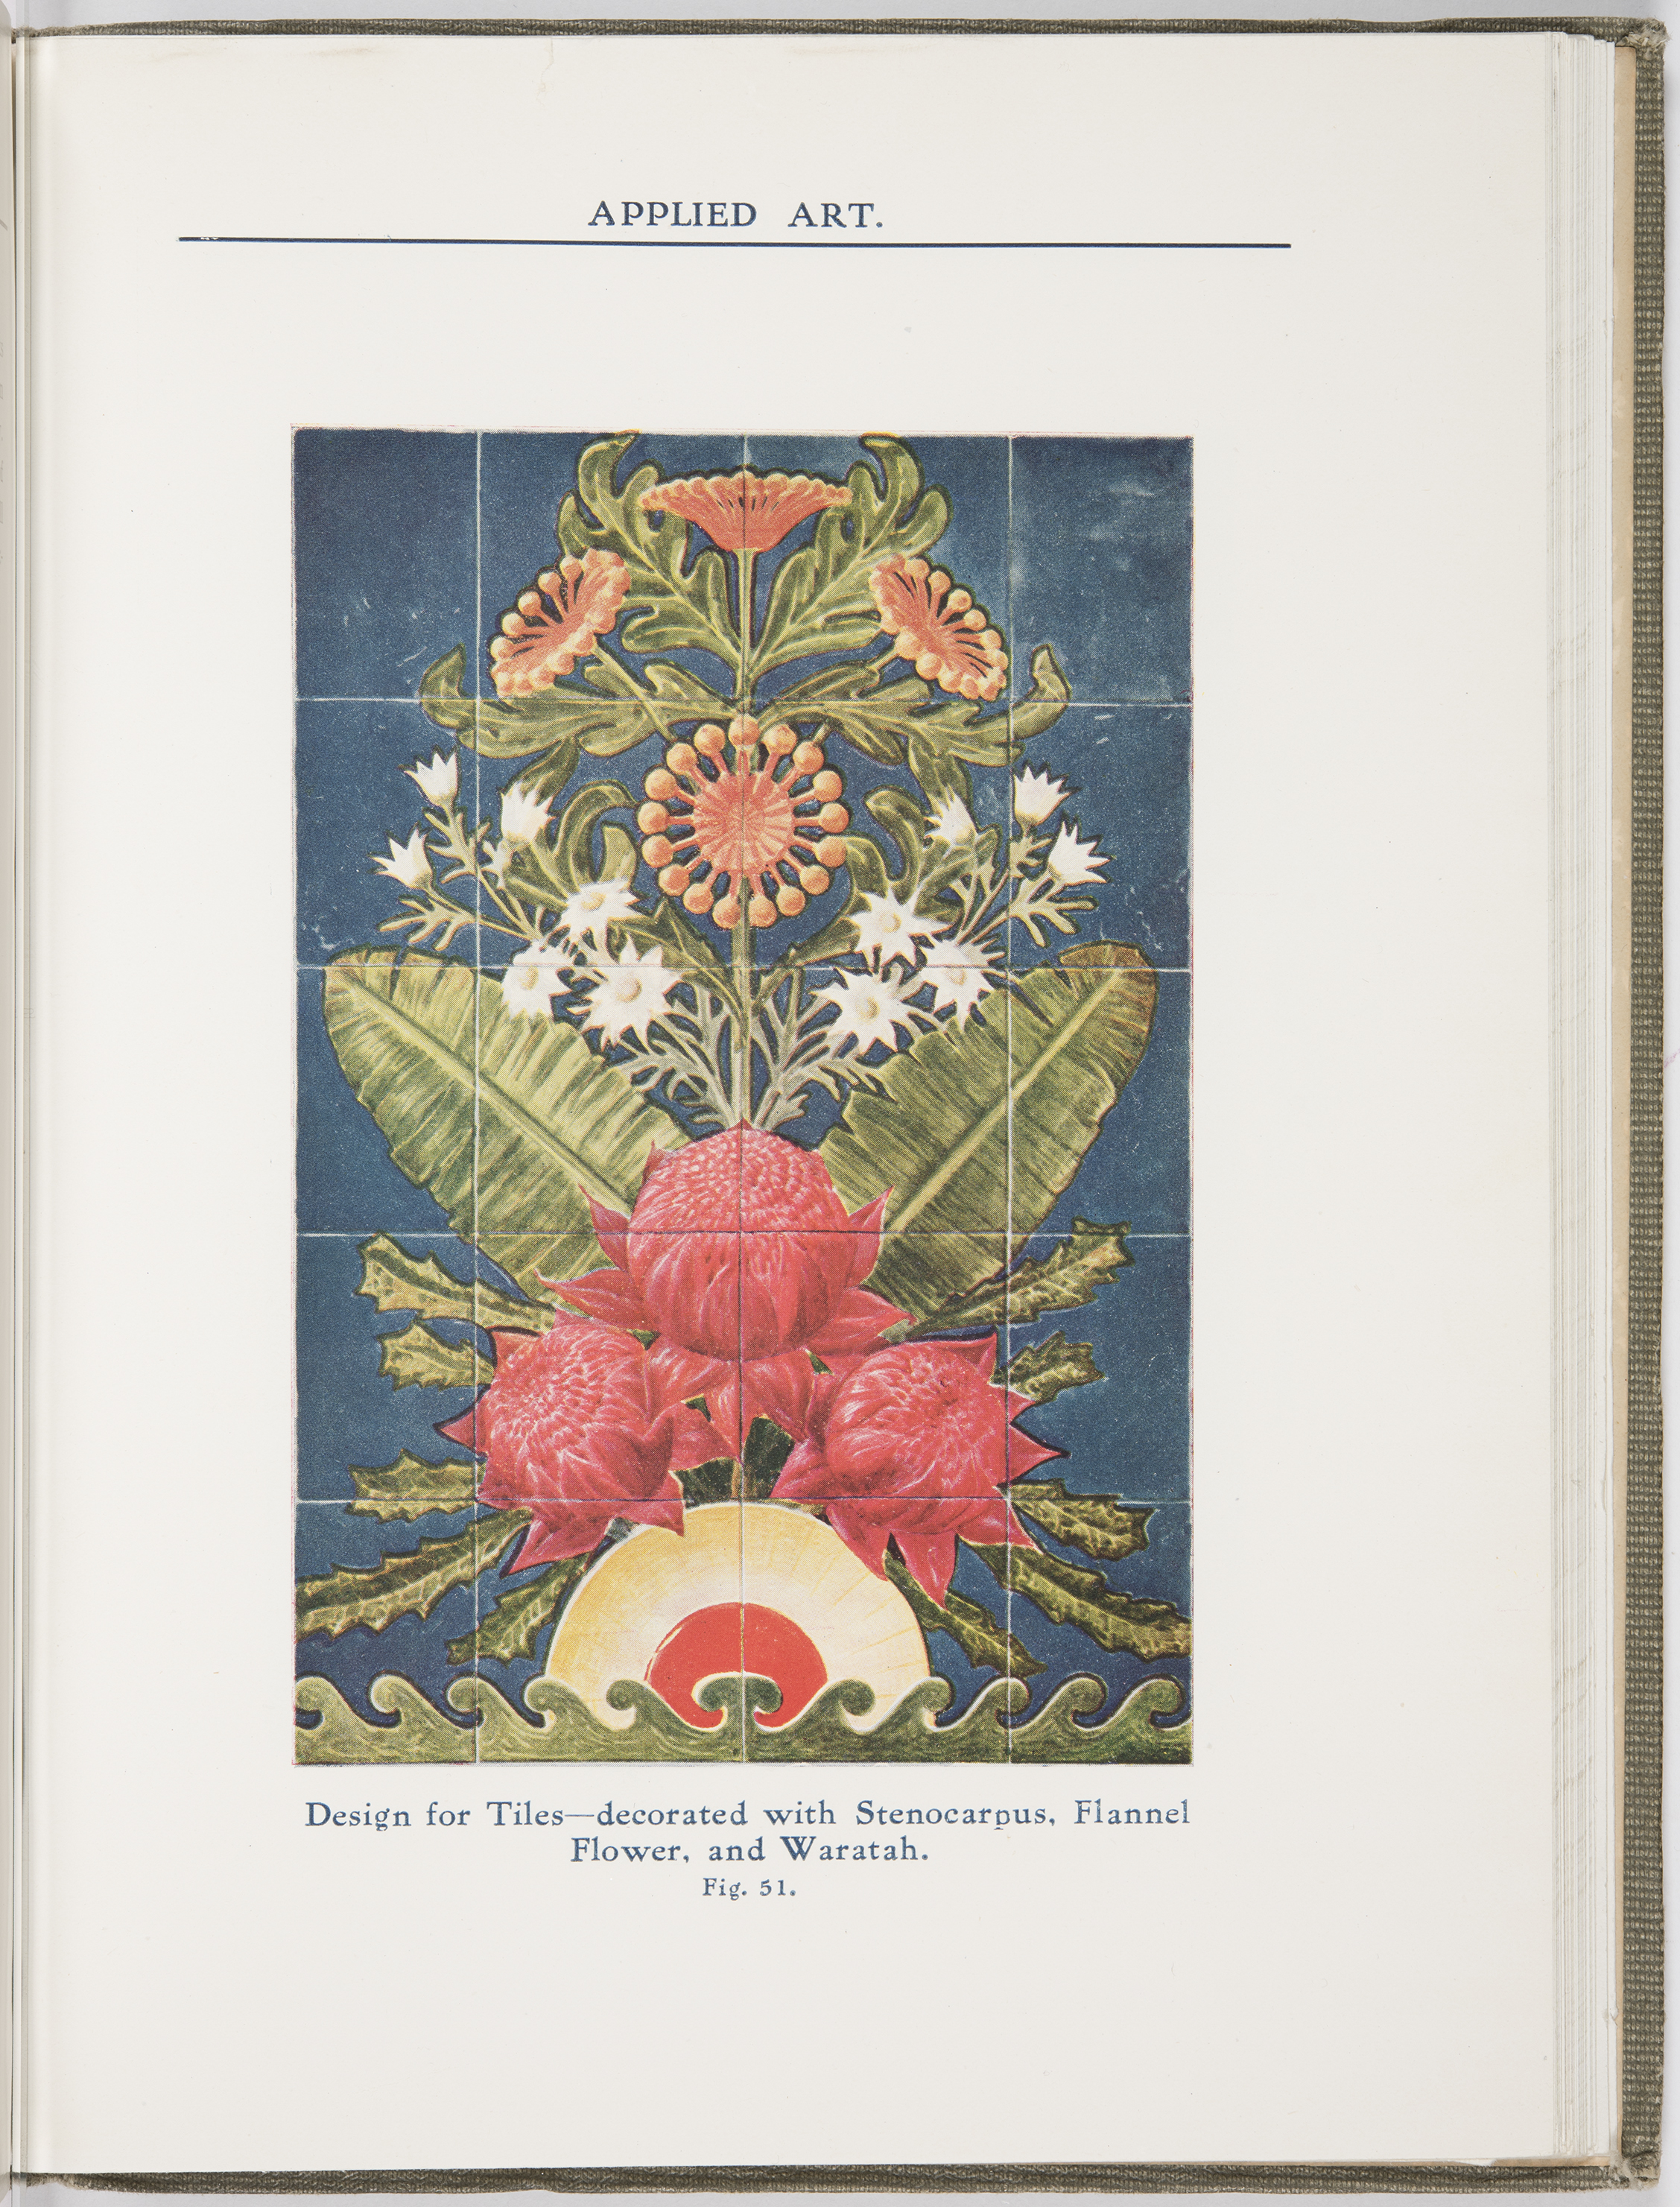 A page from a book - header 'Applied Arts' featuring an illustration of a bouquet of flowers featuring waratahs - the caption states: 'Design for Tiles'